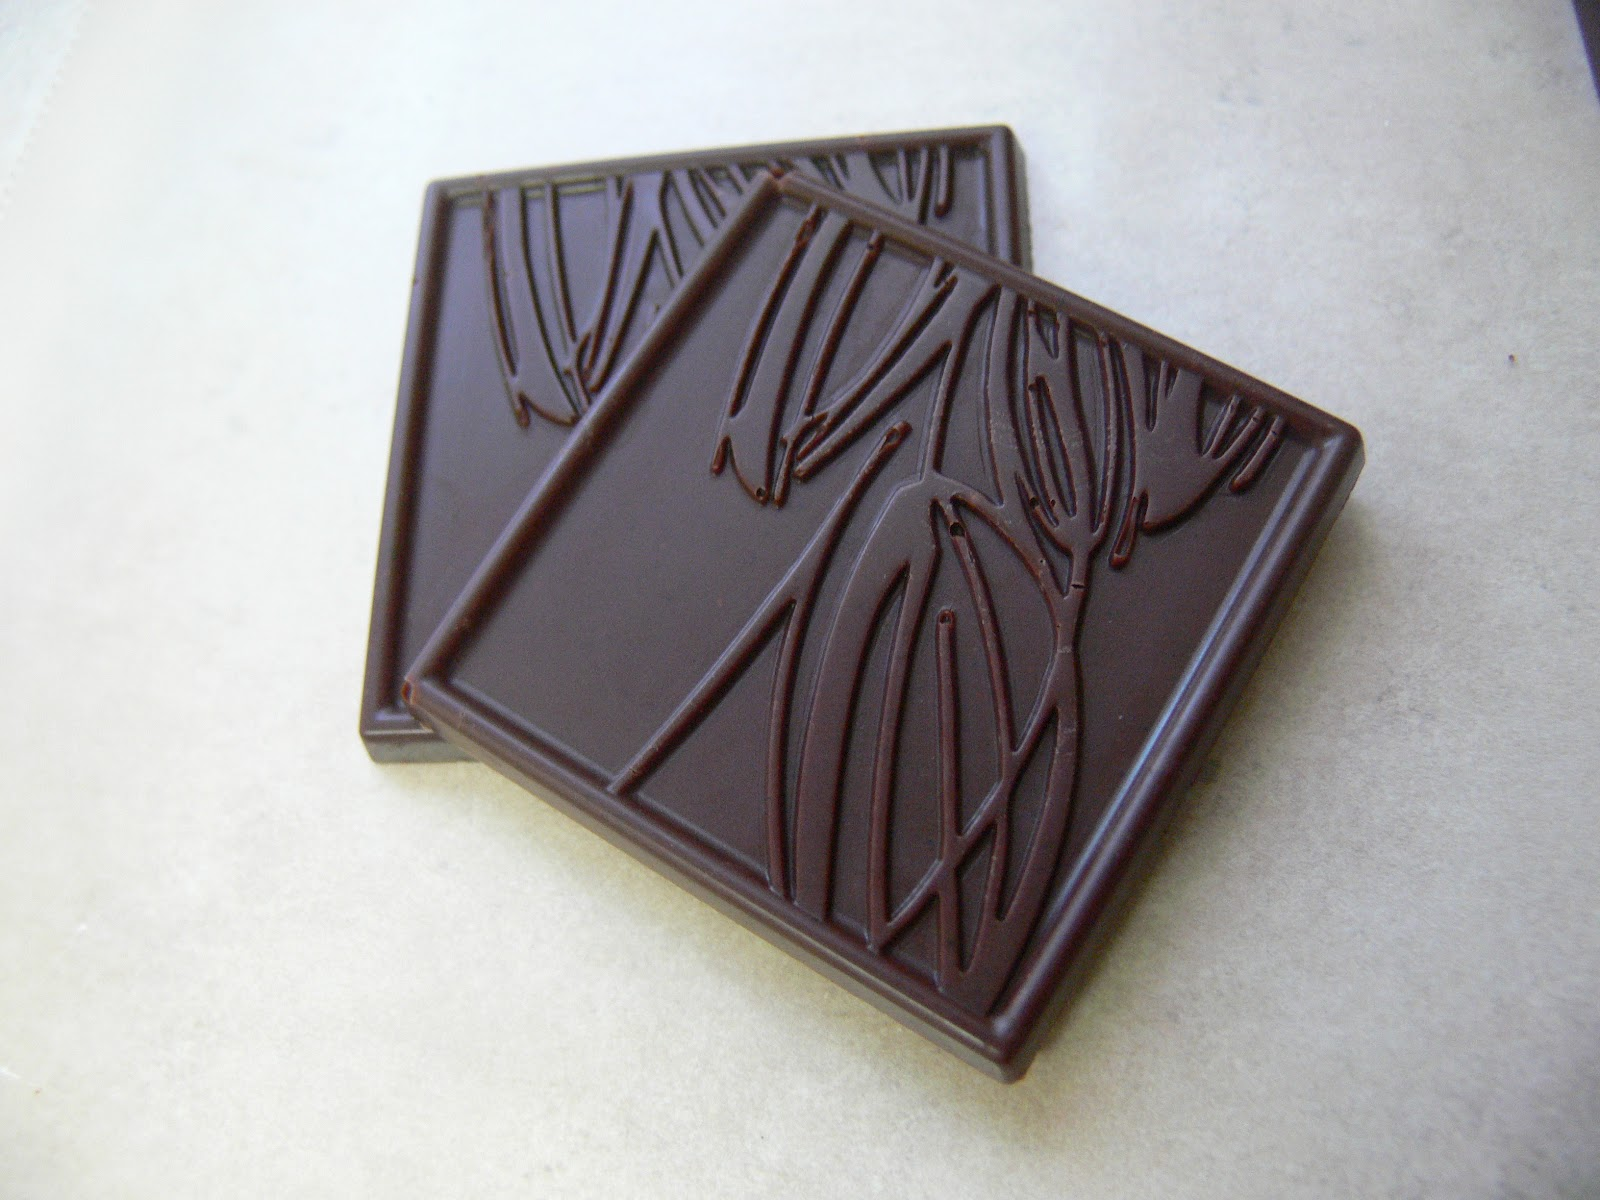 The Ultimate Chocolate Blog: Making Chocolate From Bean-to-Bar at Home